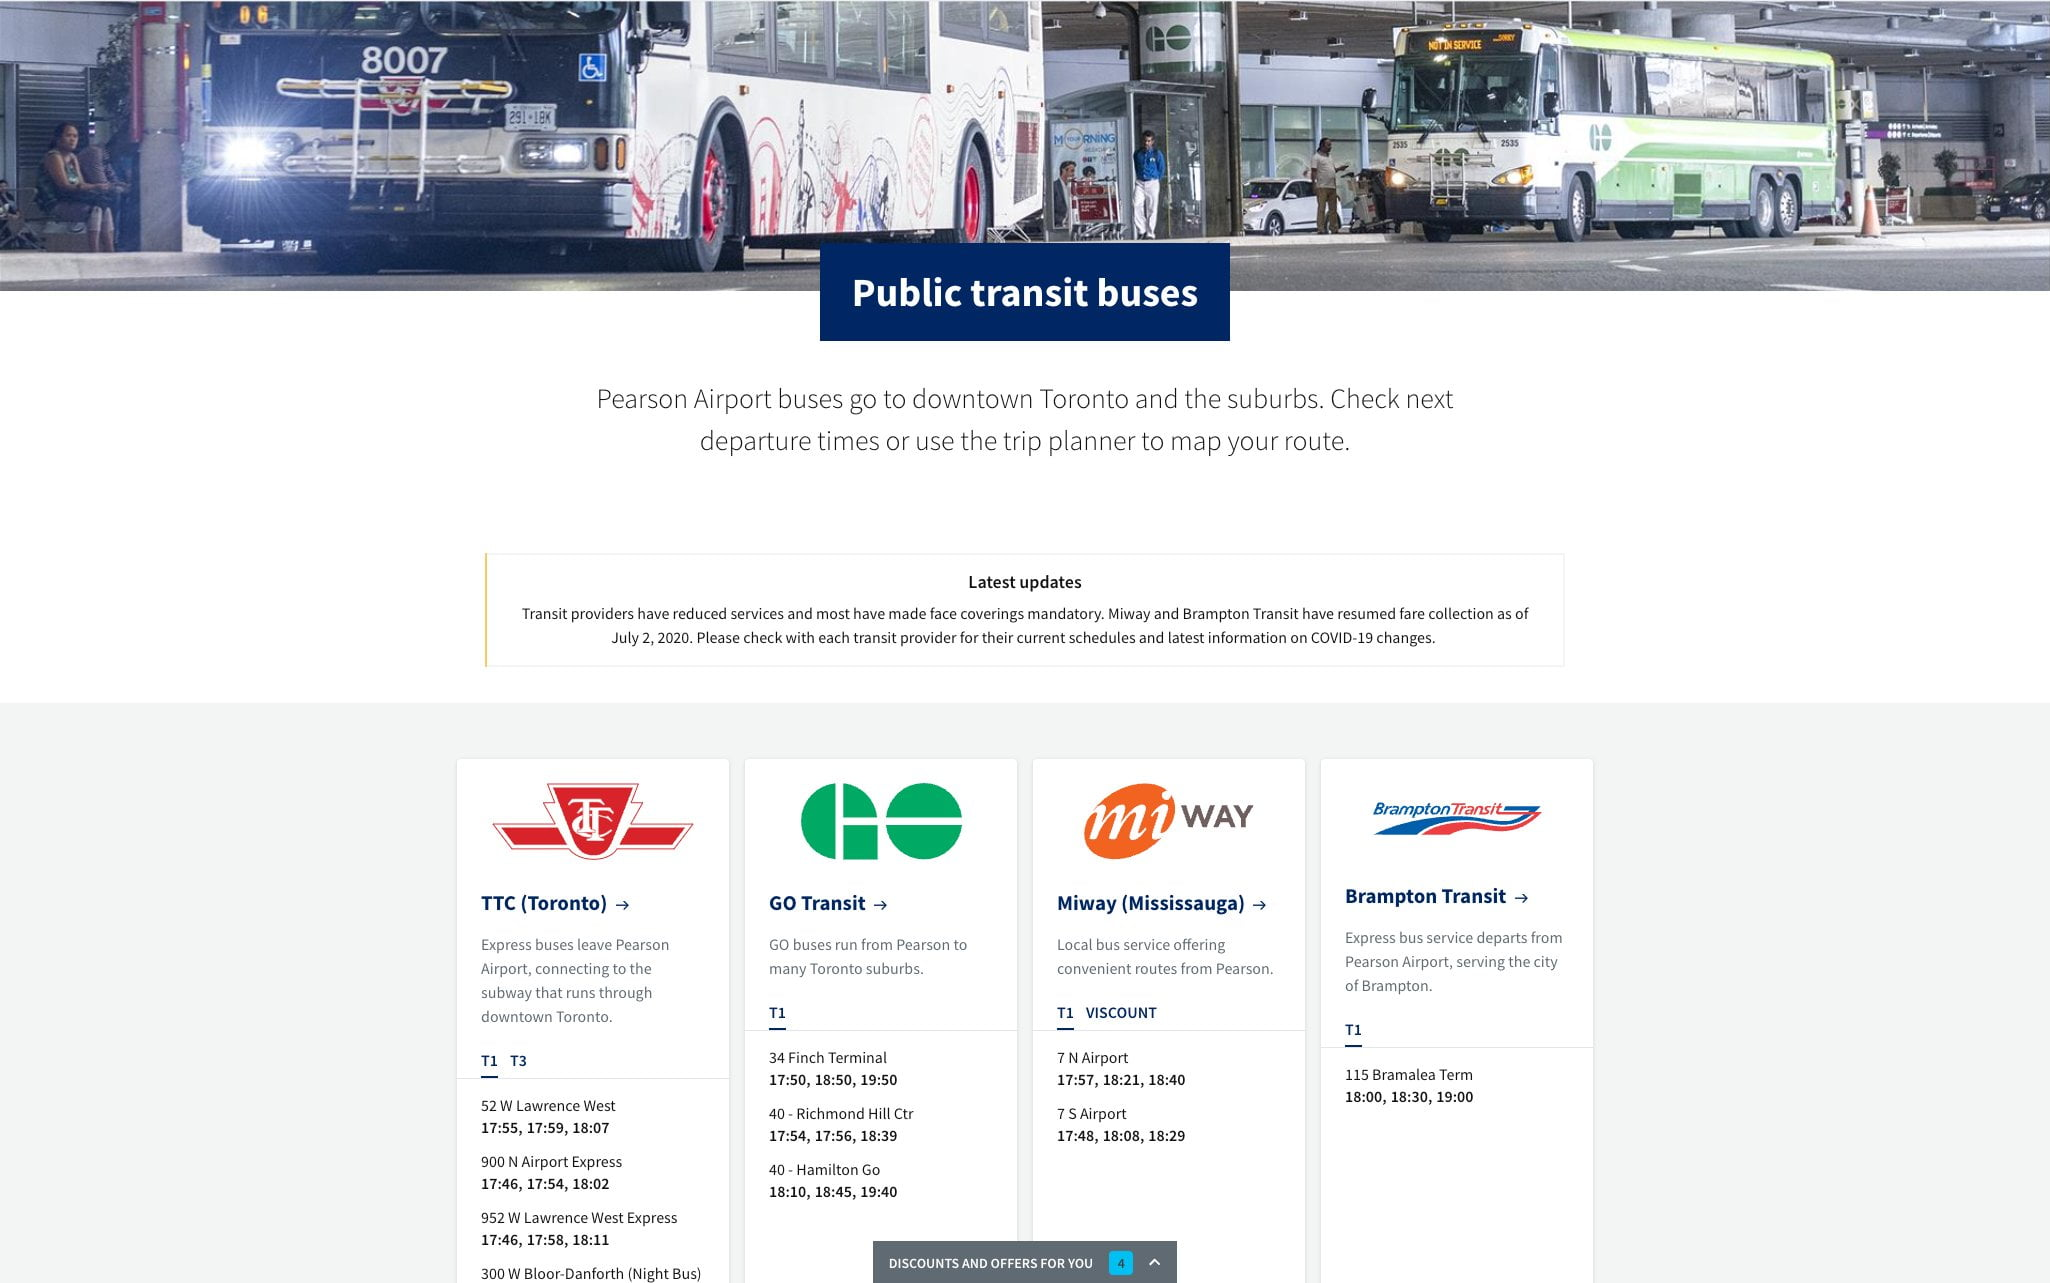 A desktop screenshot of the public transit page on TorontoPearson.com. Shows the timetable of buses that leave the airport.